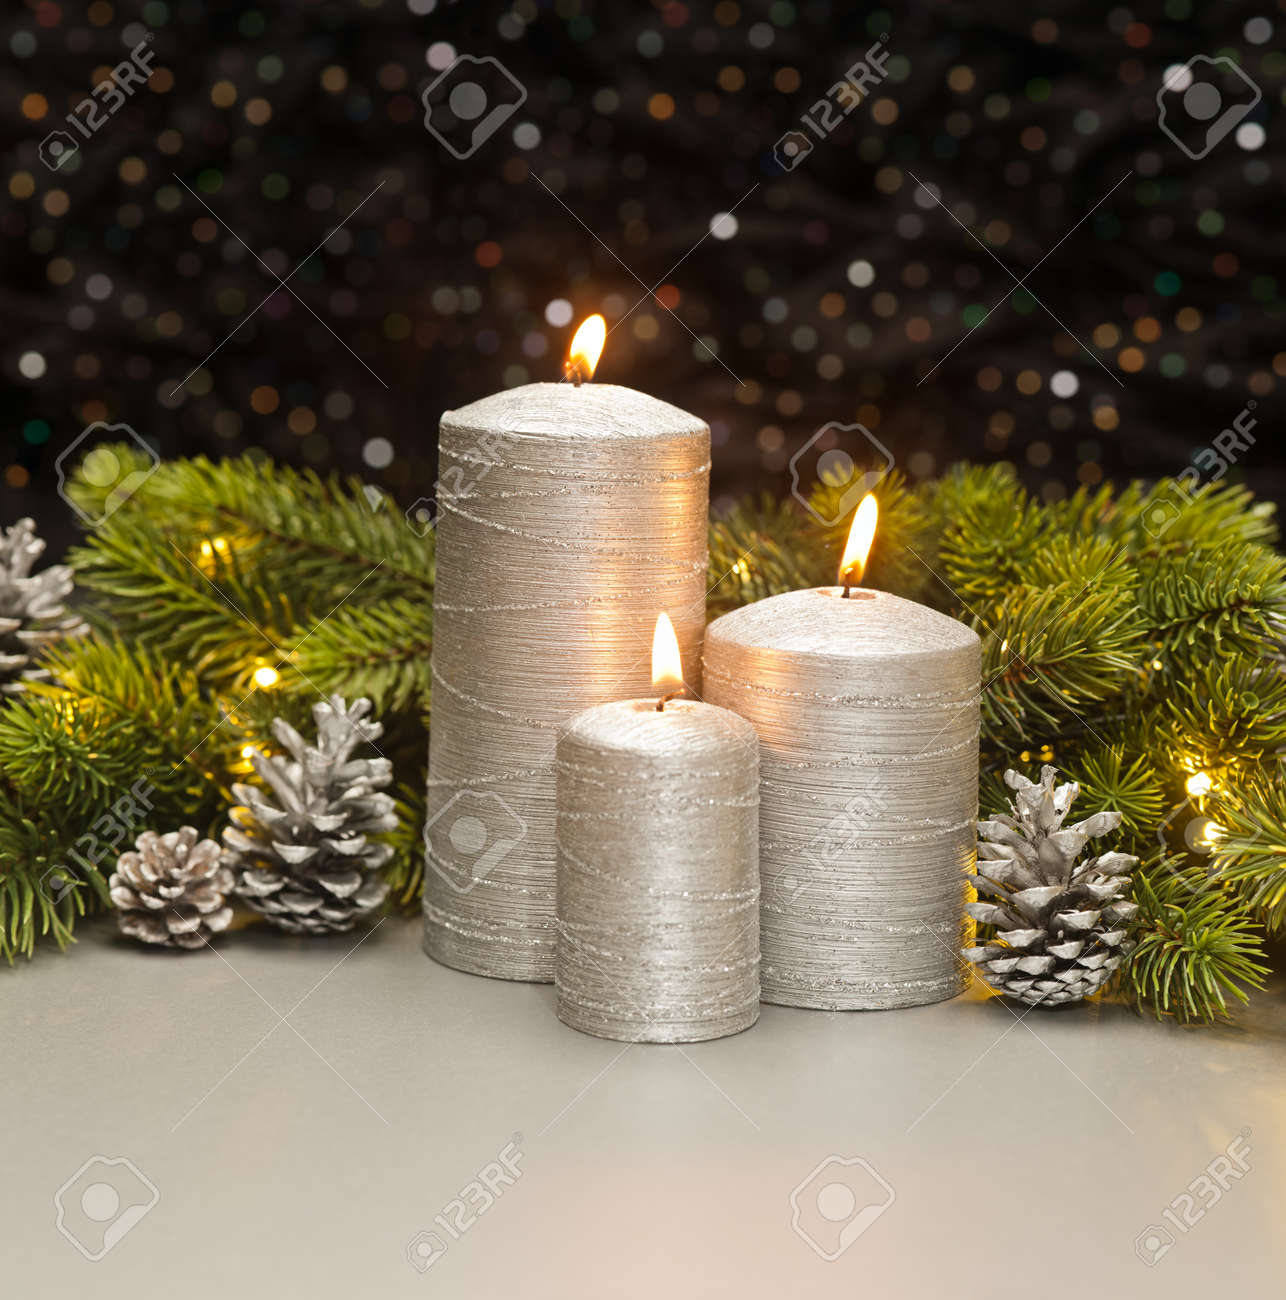 Pine Cone Candles Three Silver Candles With Christmas Tree Branches And Pine Cones